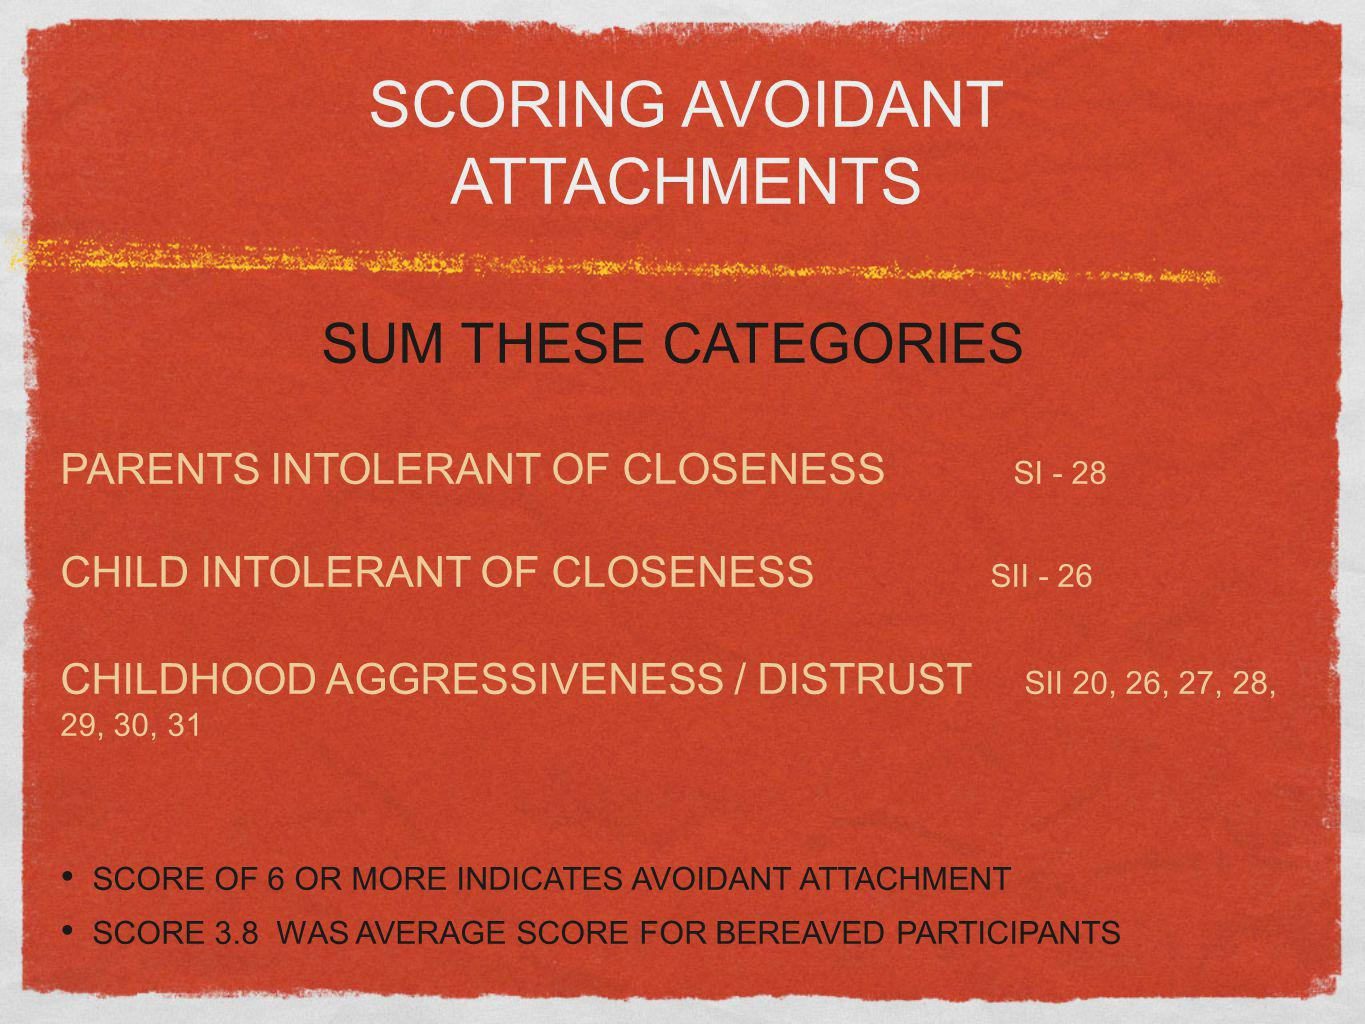 SCORING AVOIDANT ATTACHMENTS